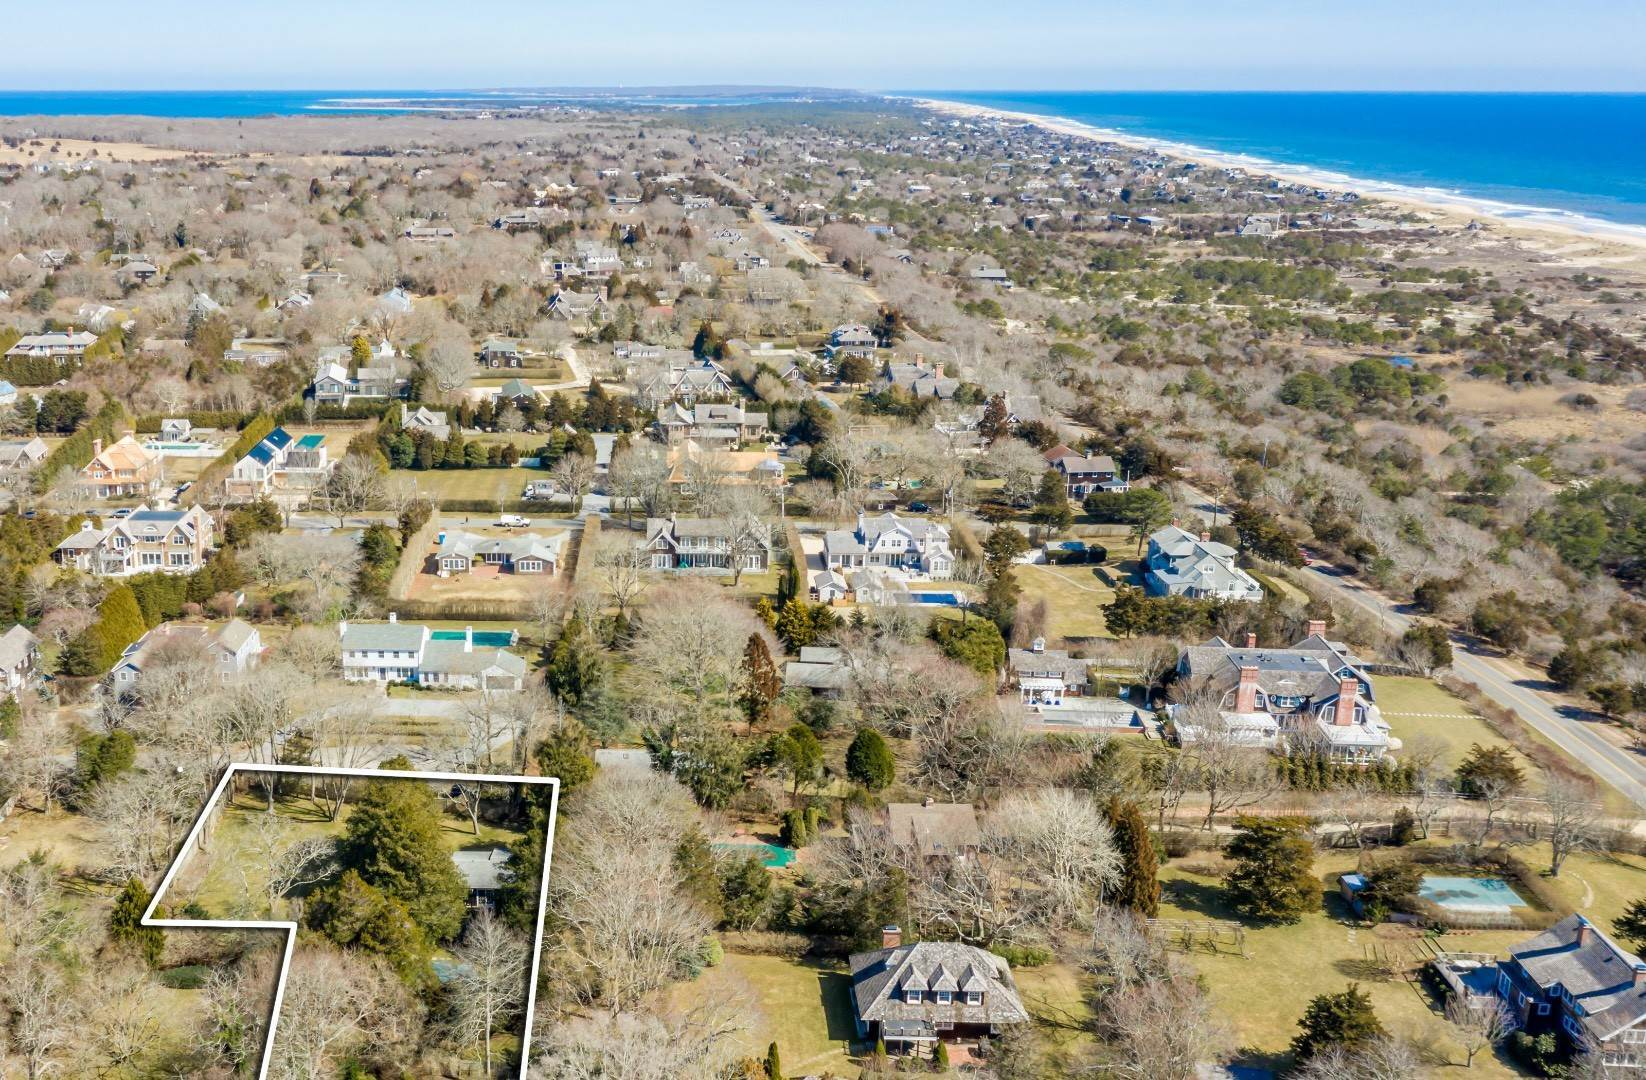 Single Family Home for Sale at Prime Location In The Amagansett Lanes 7 Gansett Lane, Amagansett, NY 11930